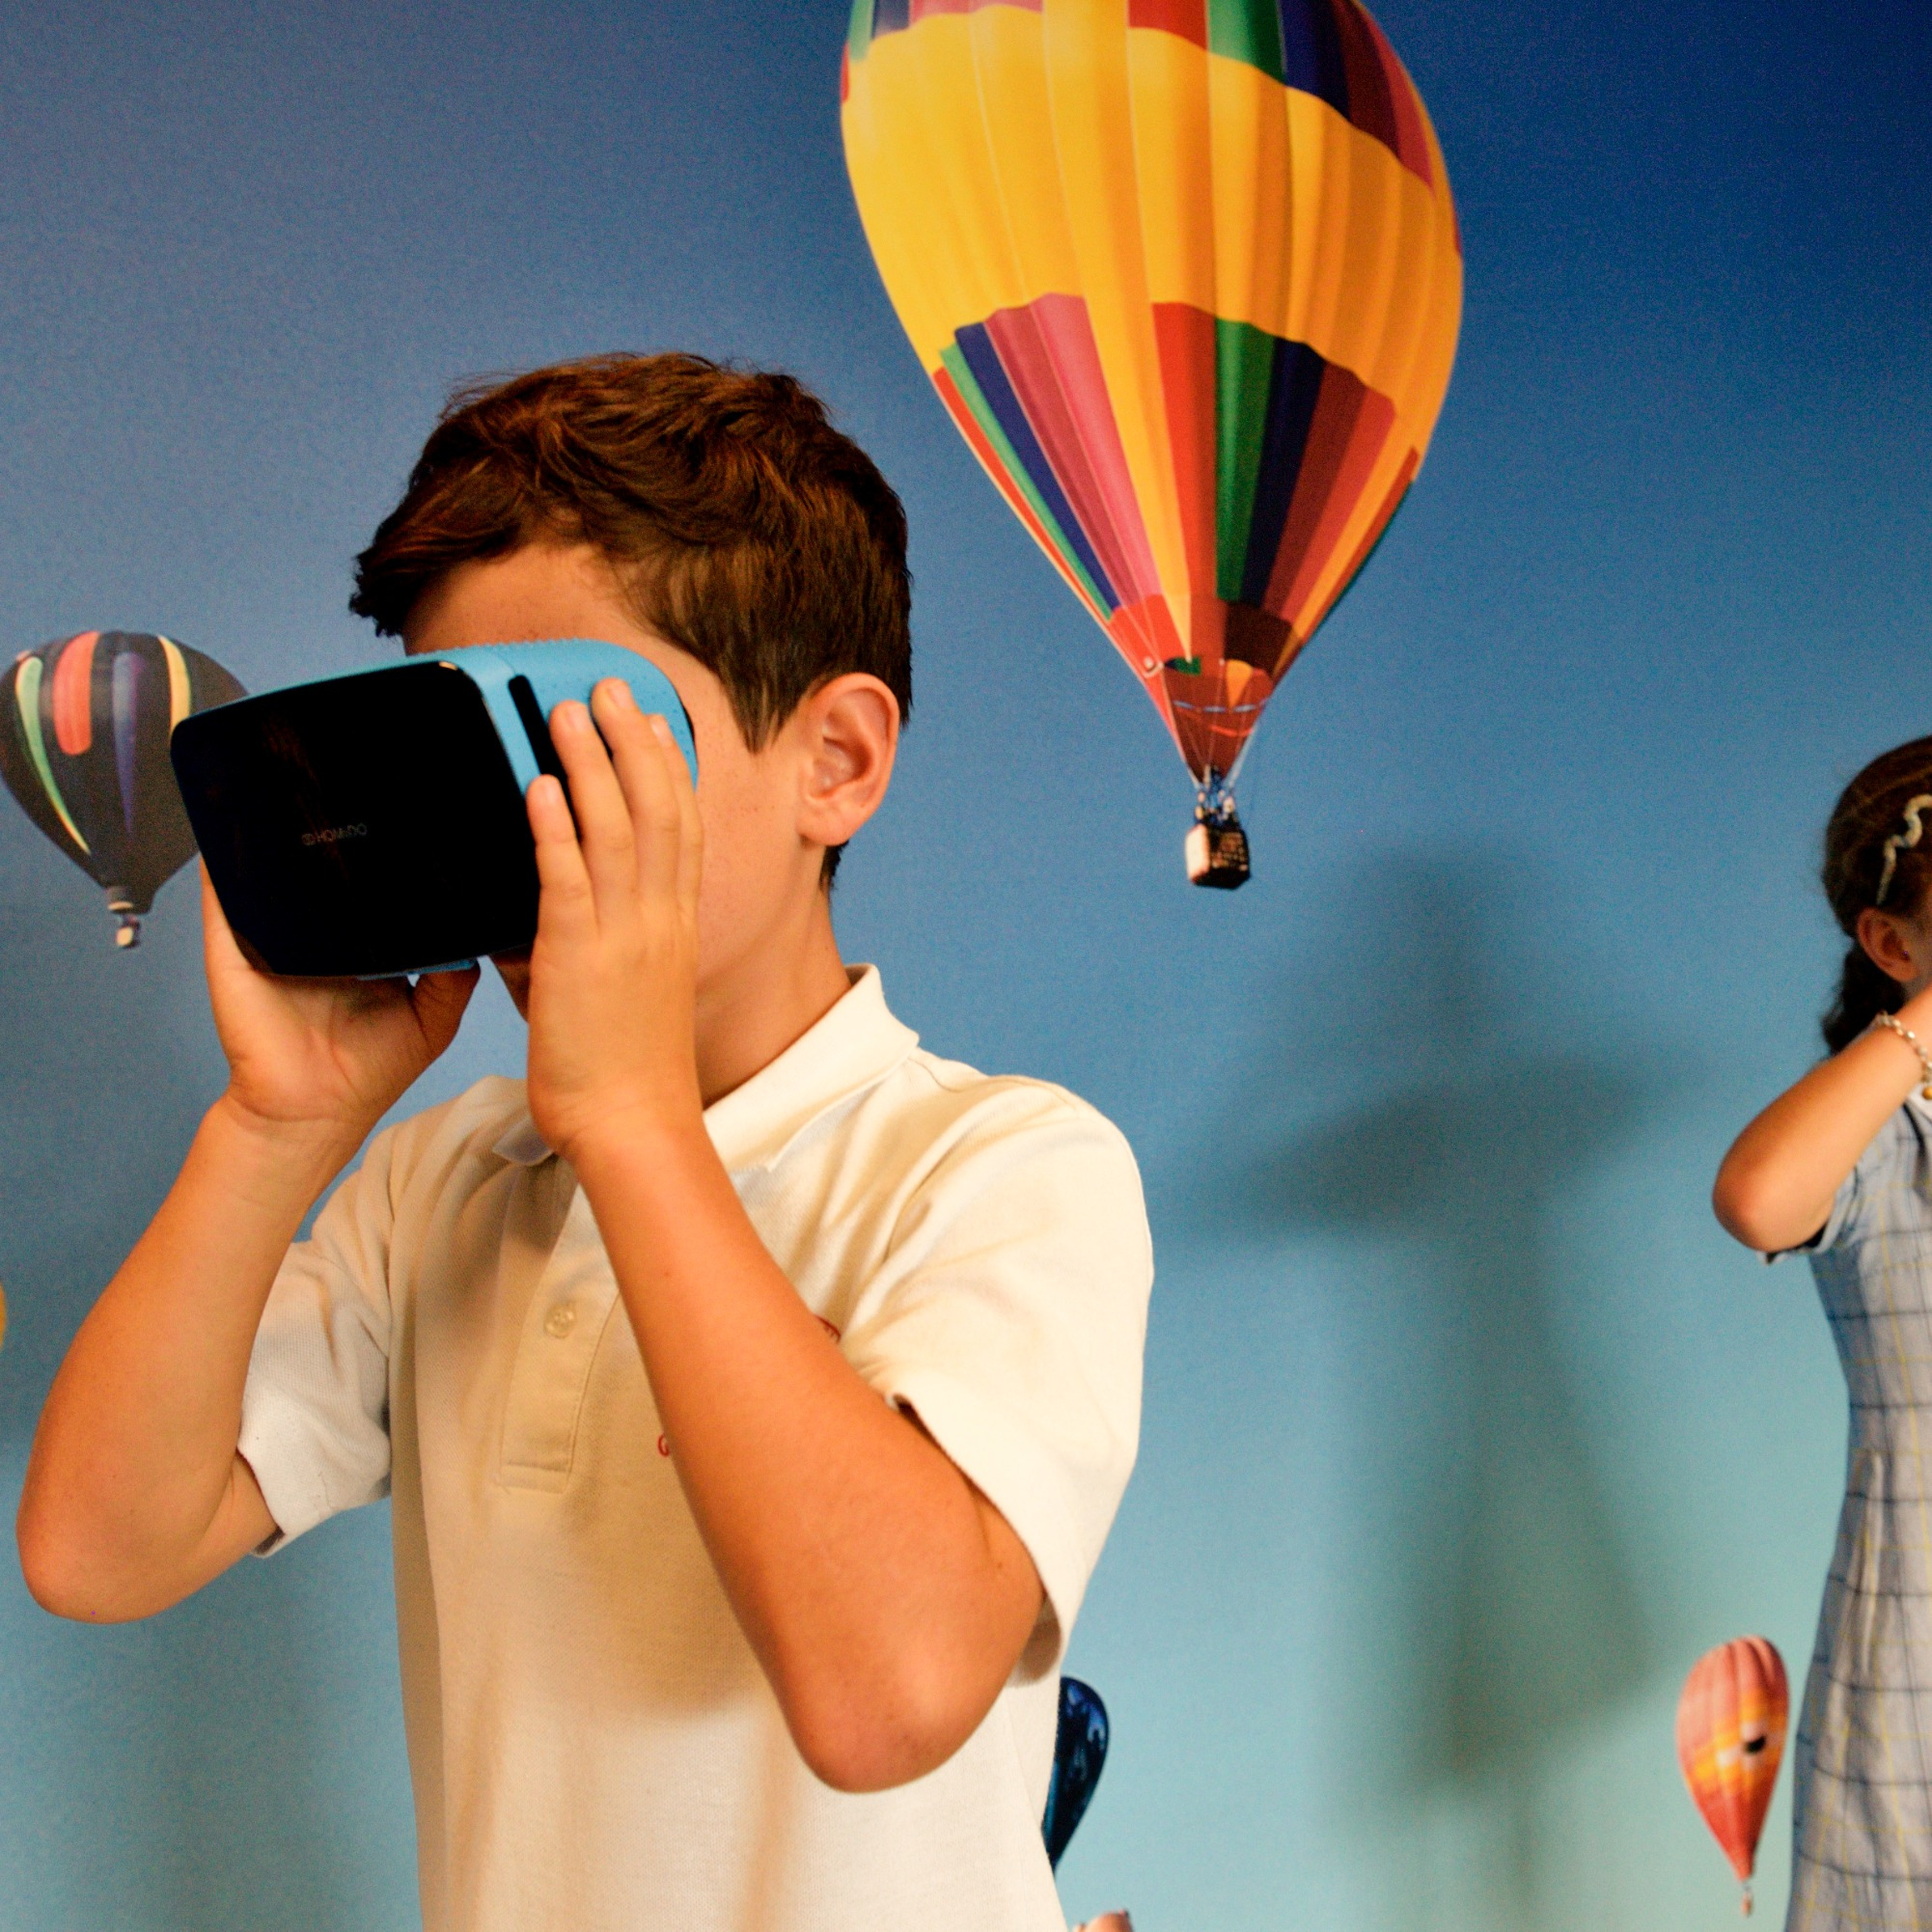 Eventos Digitales- Realidad Virtual